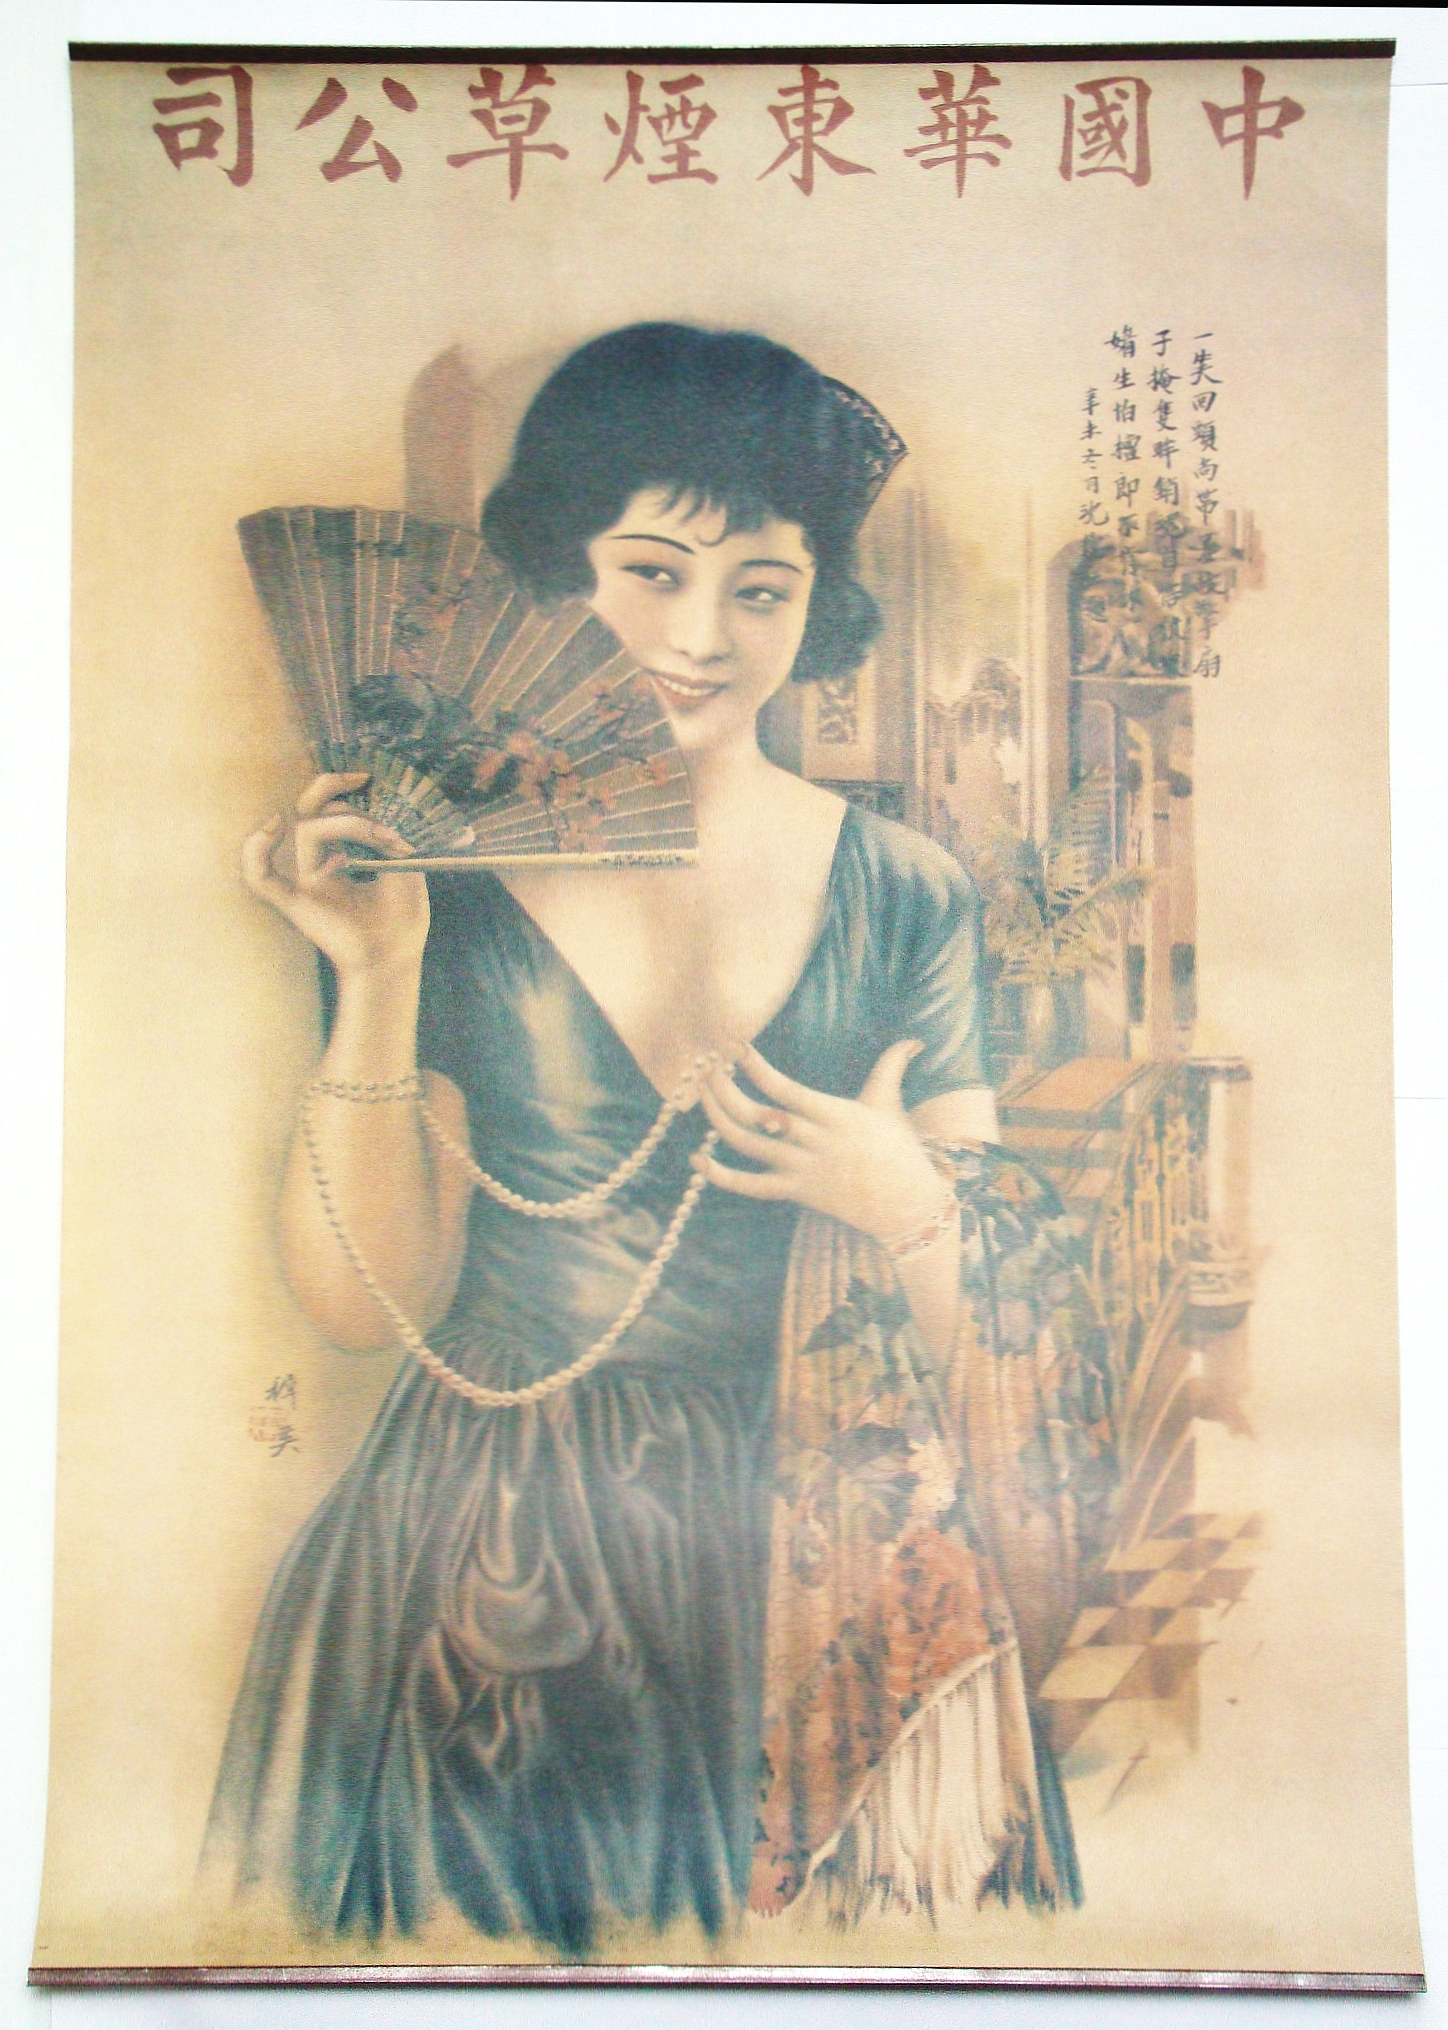 Image for Chinese / Shanghai Replica Advertising Poster Featuring Seductive Lady in Low-cut Dress with Fan